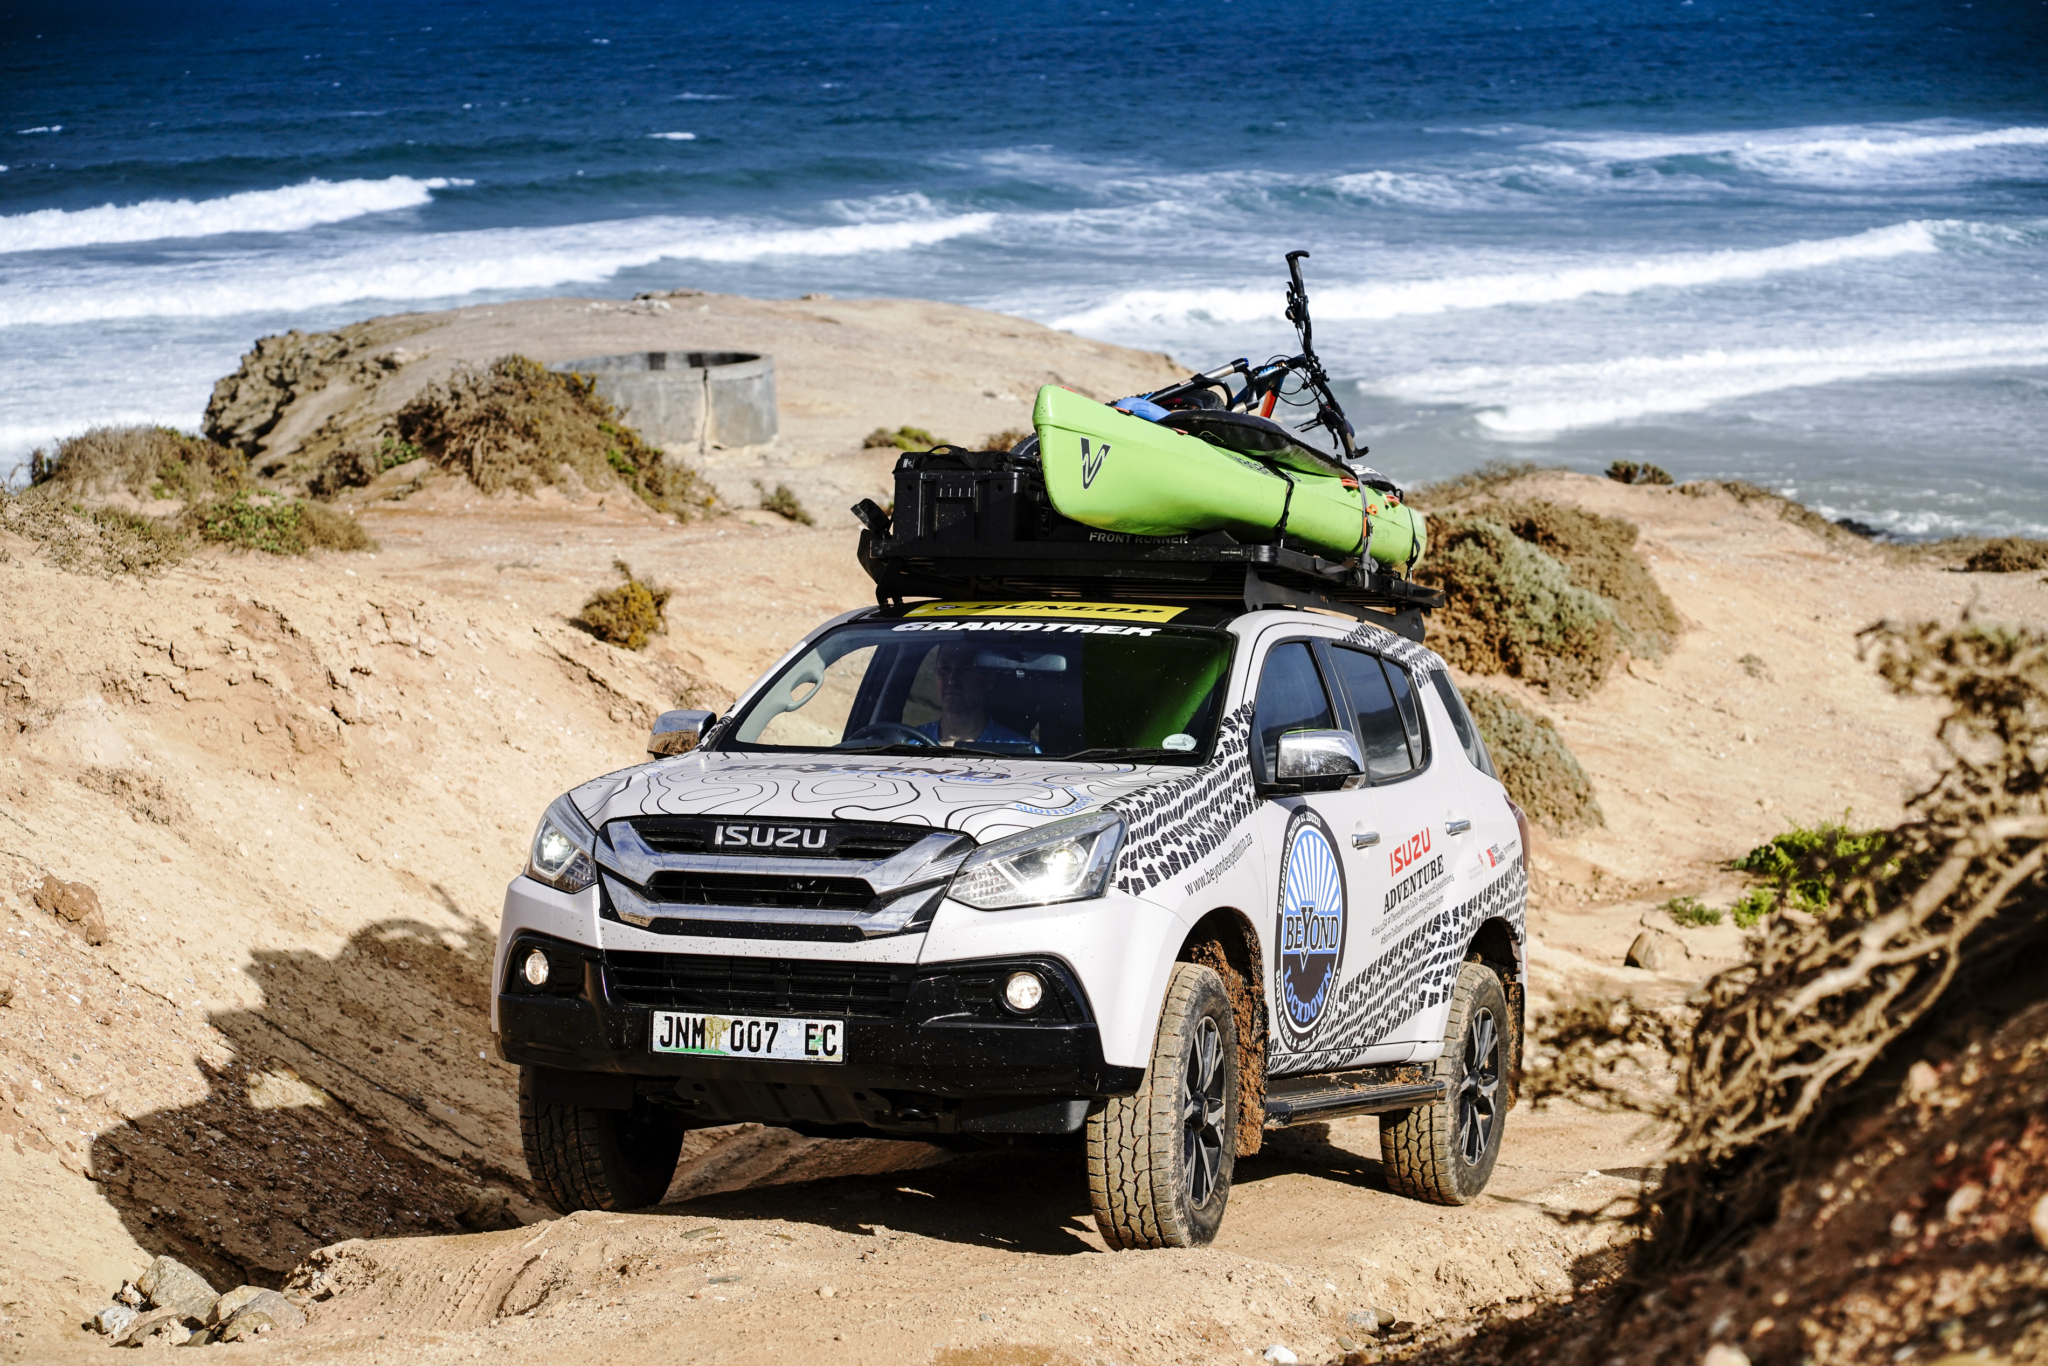 Sumitomo South Africa helps Google Street View in mapping adventure